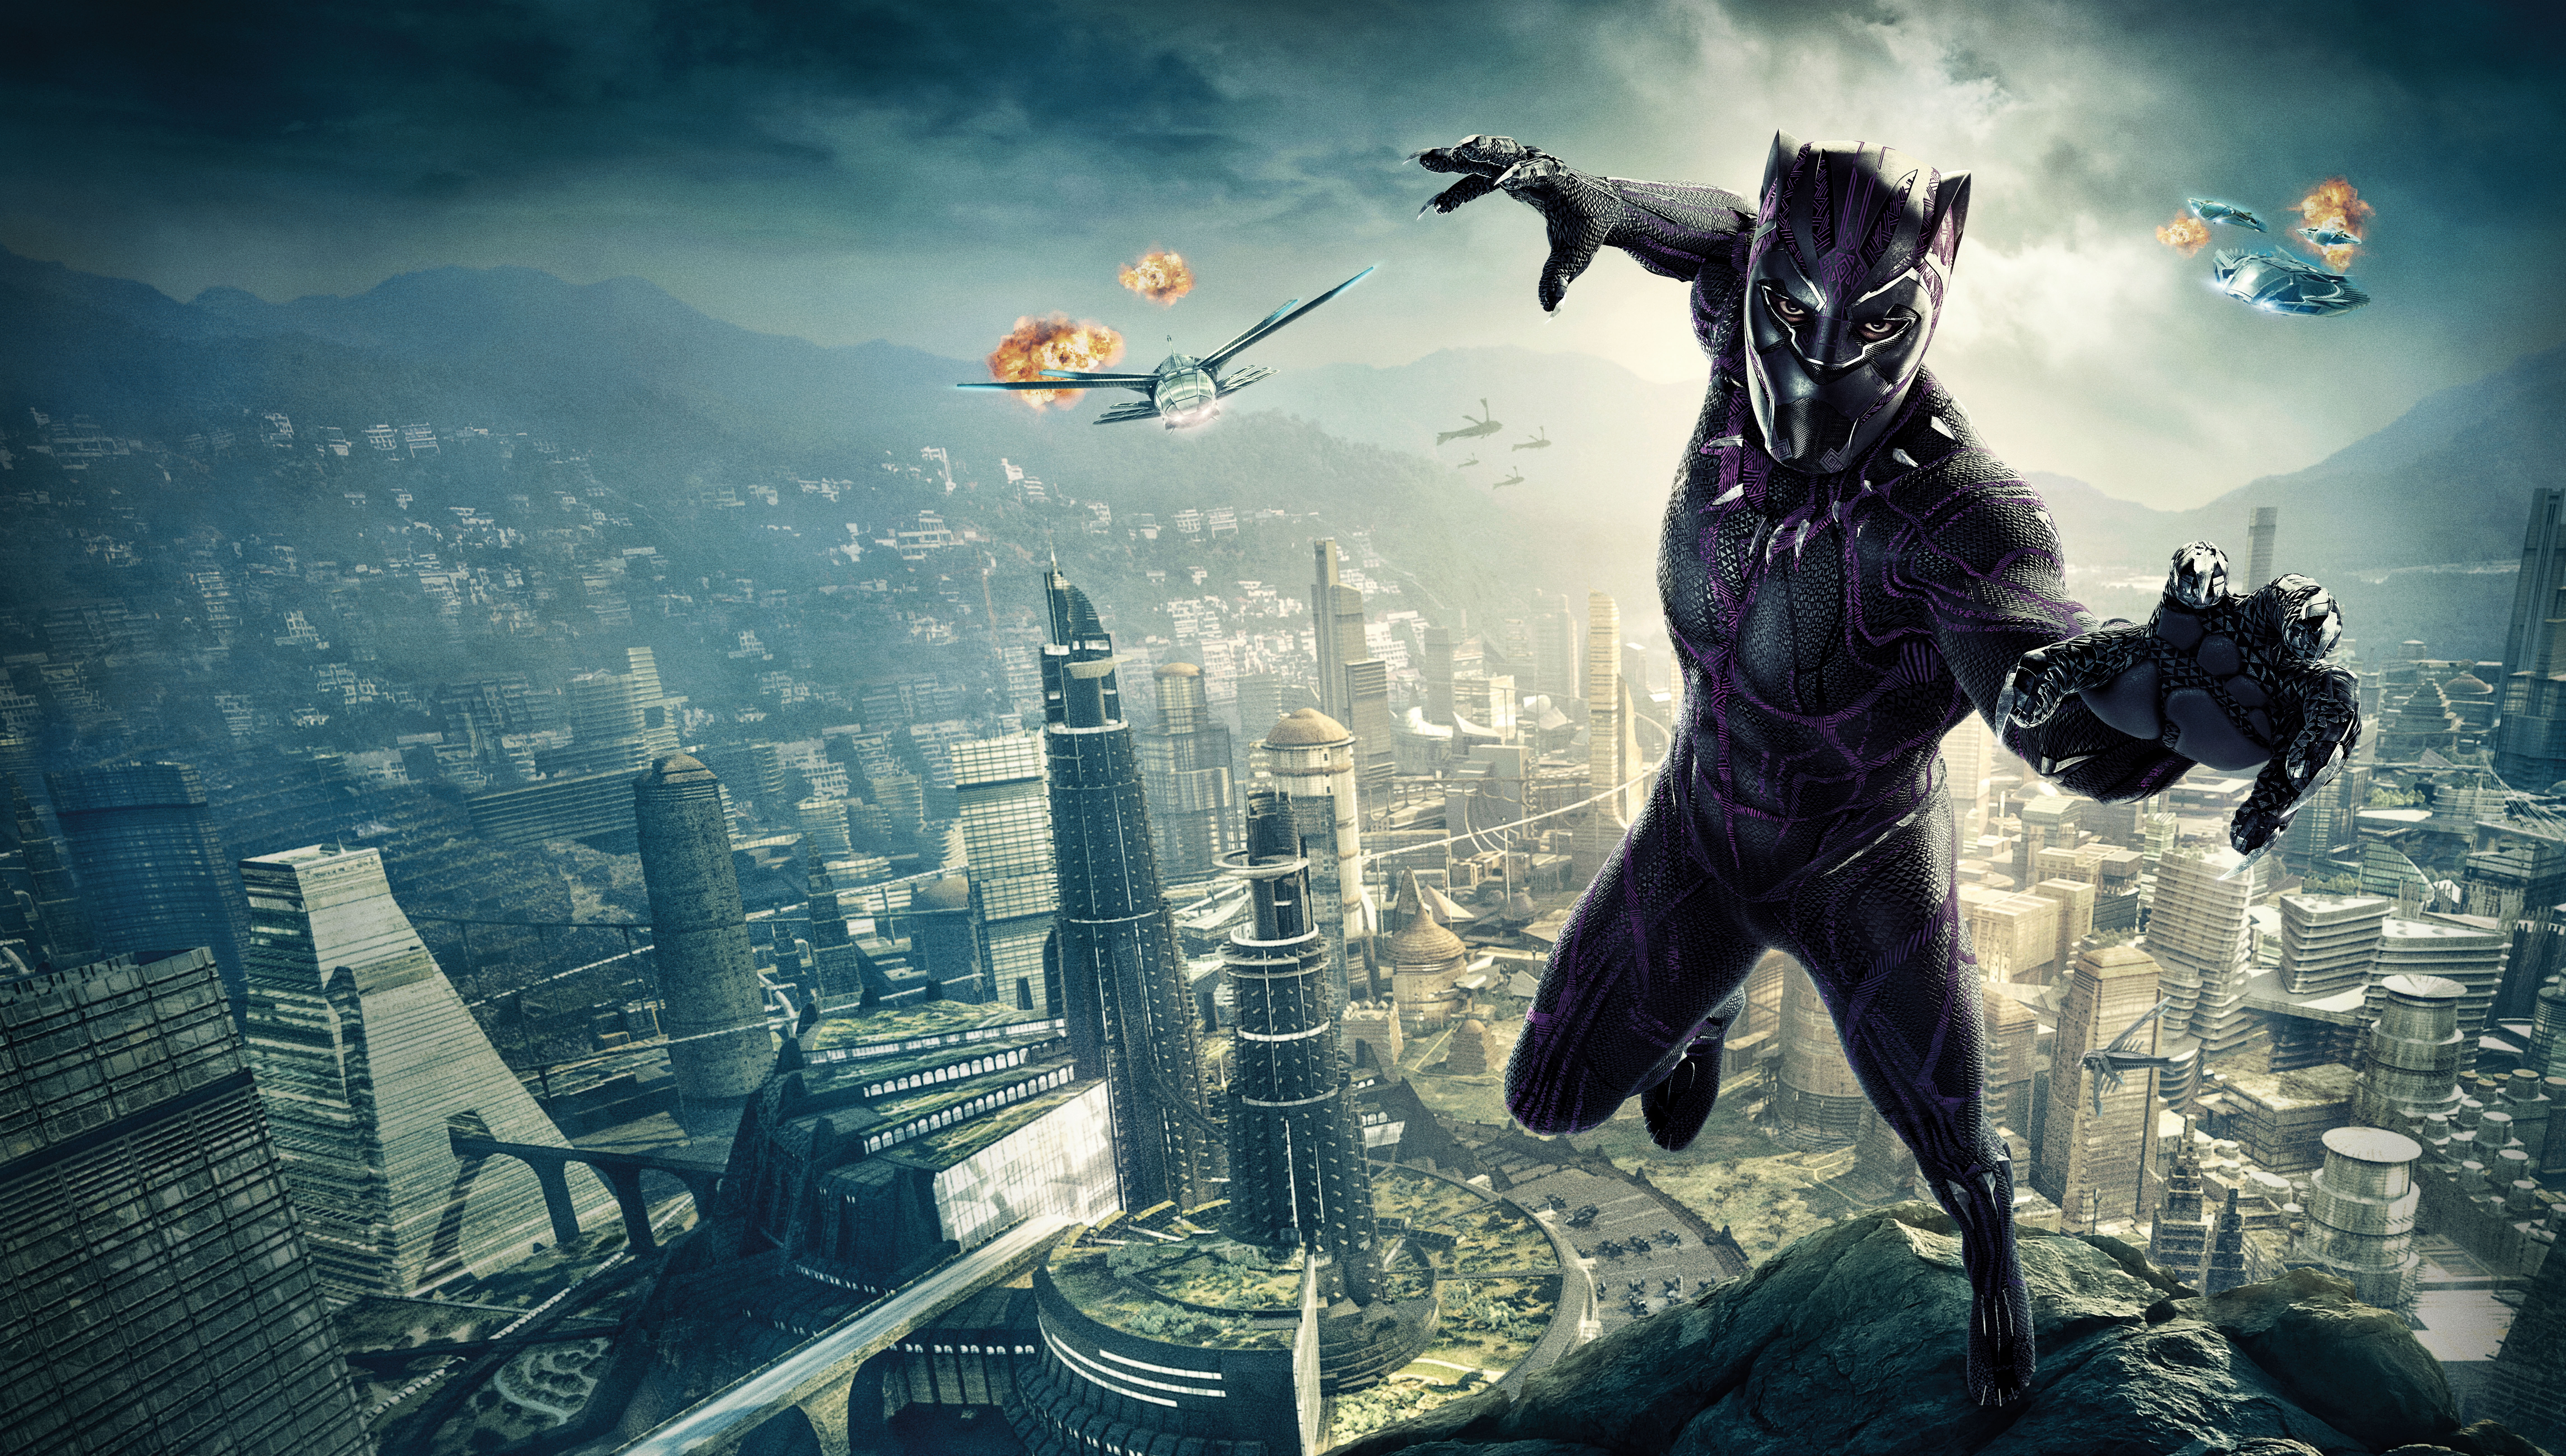 Black panther 10k poster hd movies 4k wallpapers images - 10k wallpaper nature ...